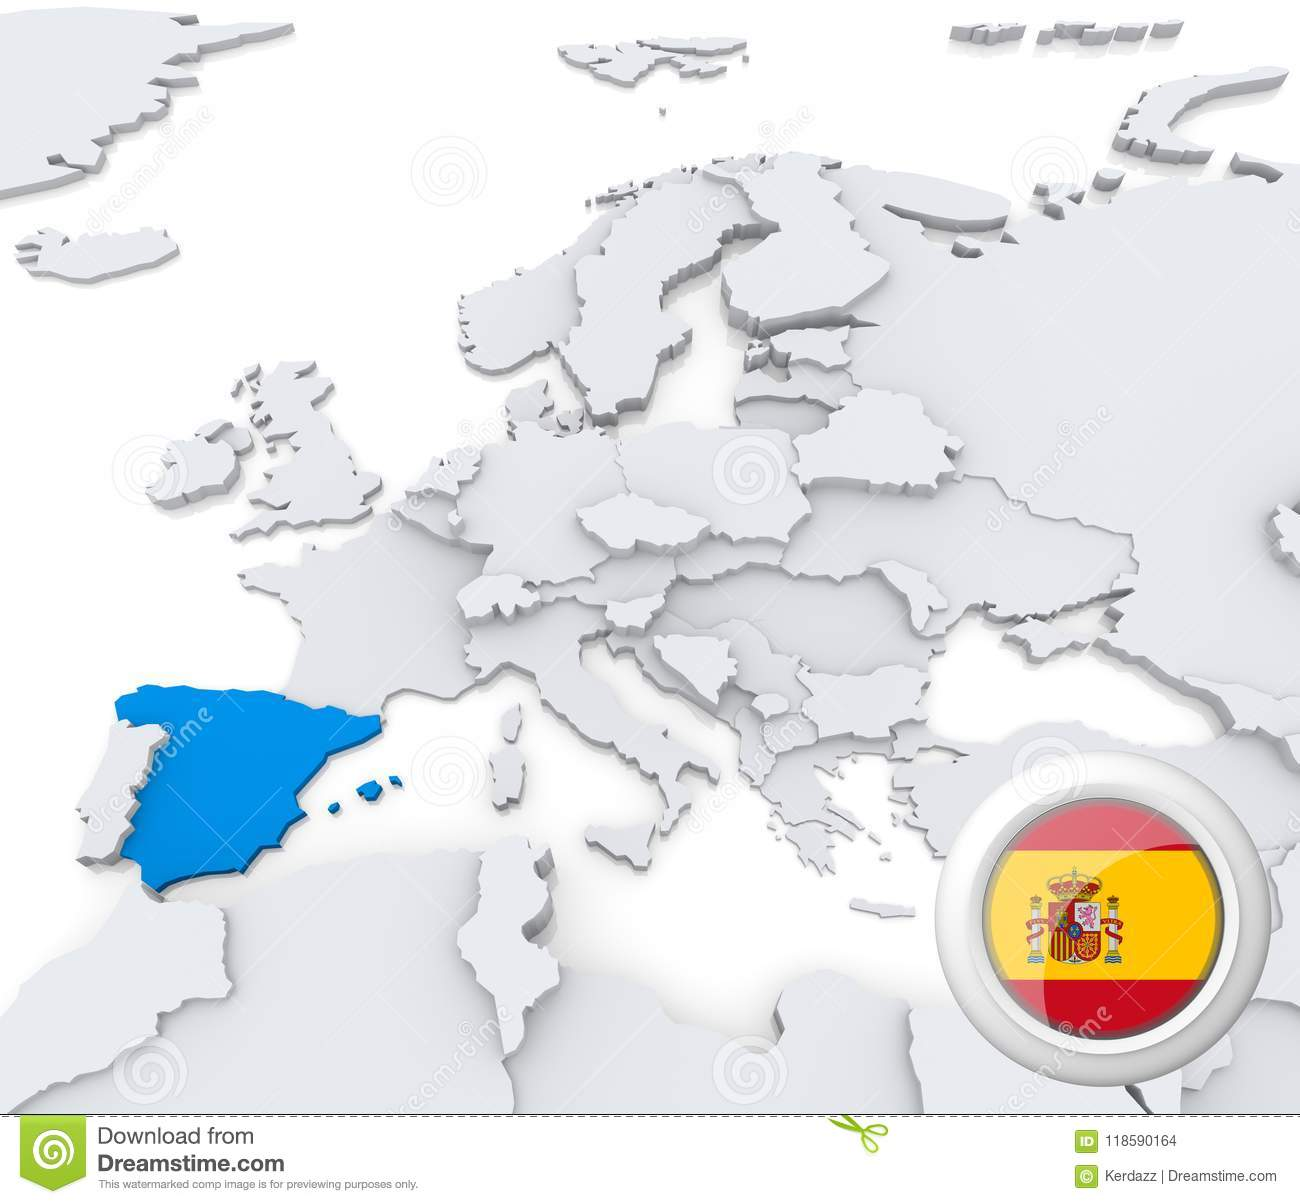 Spain Map Of Europe.Spain On Map Of Europe Stock Illustration Illustration Of Graphic